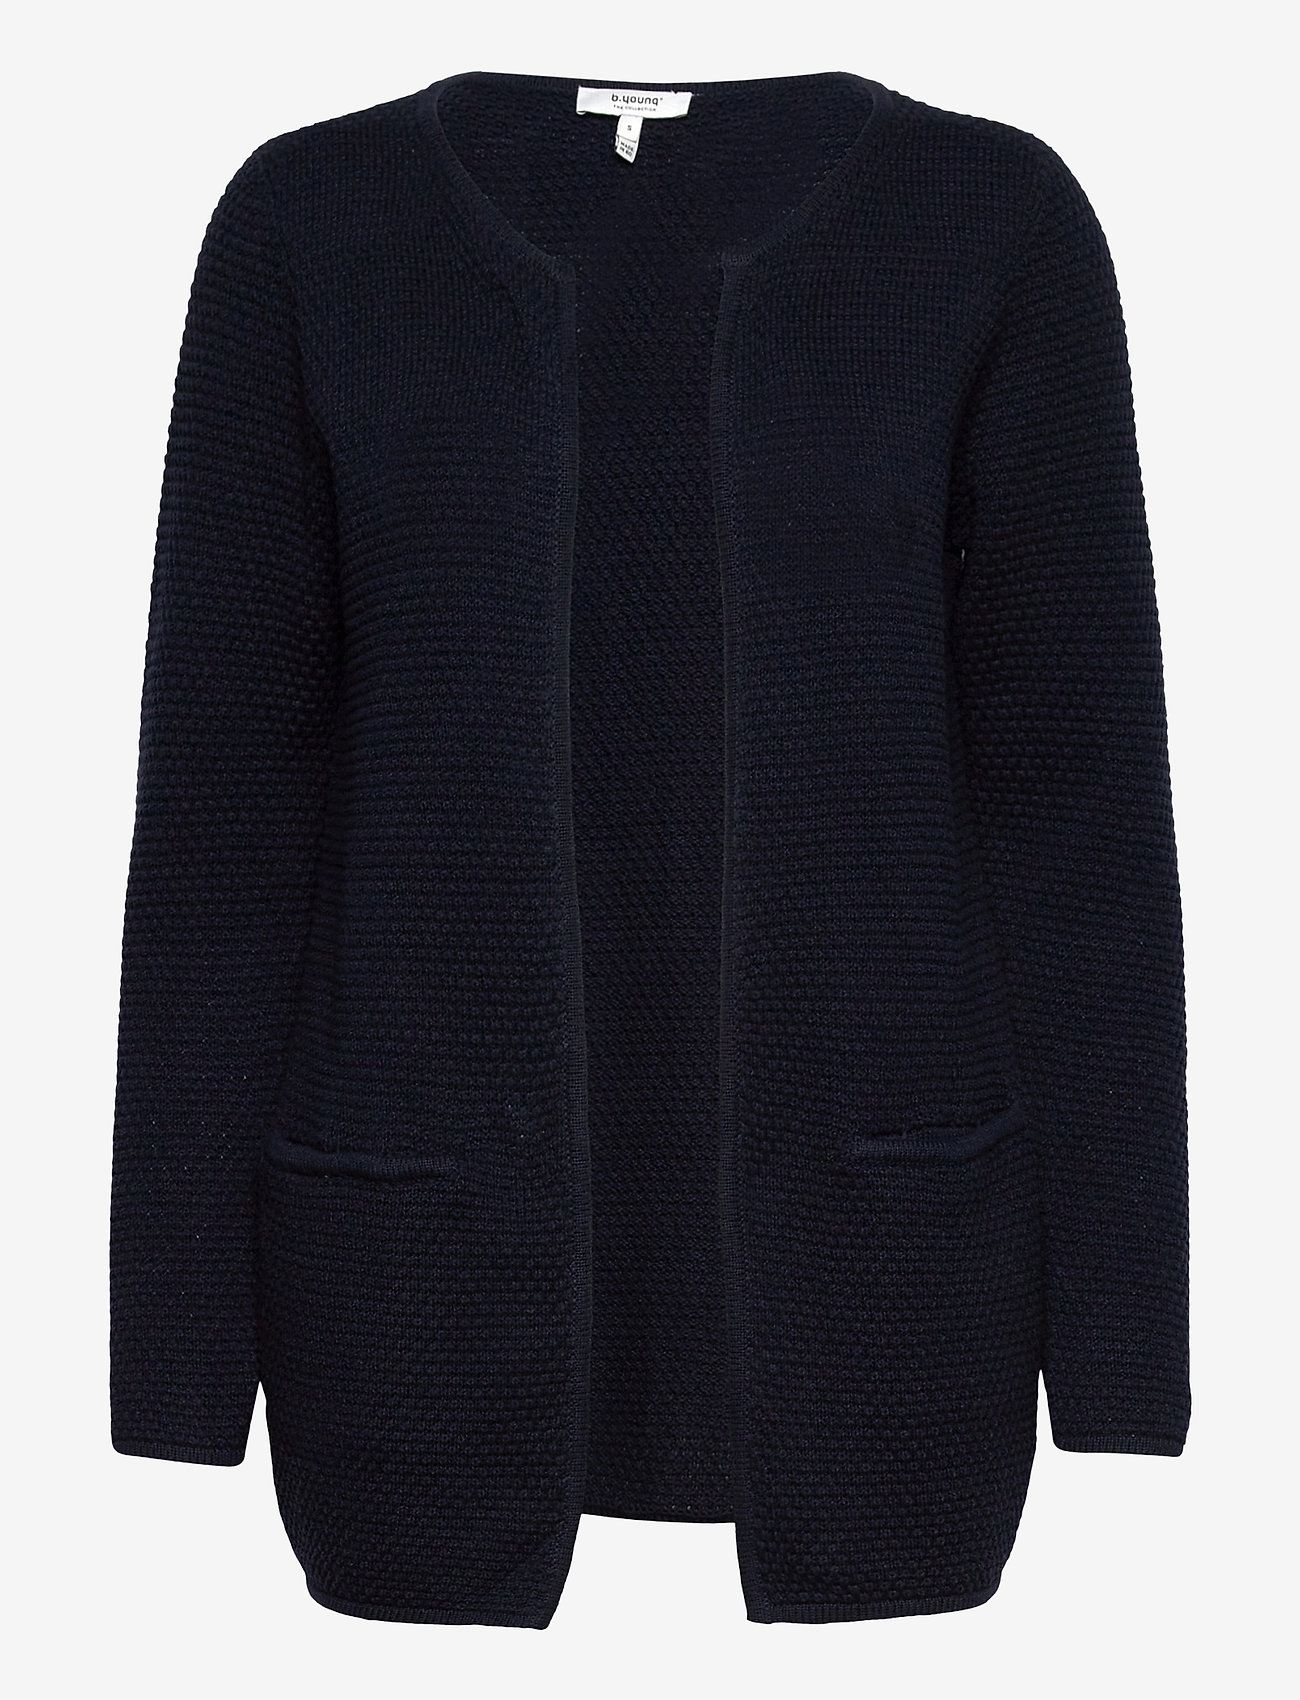 b.young - BYMIKALA STRUCTURE CARDIGAN - koftor - copenhagen night - 0